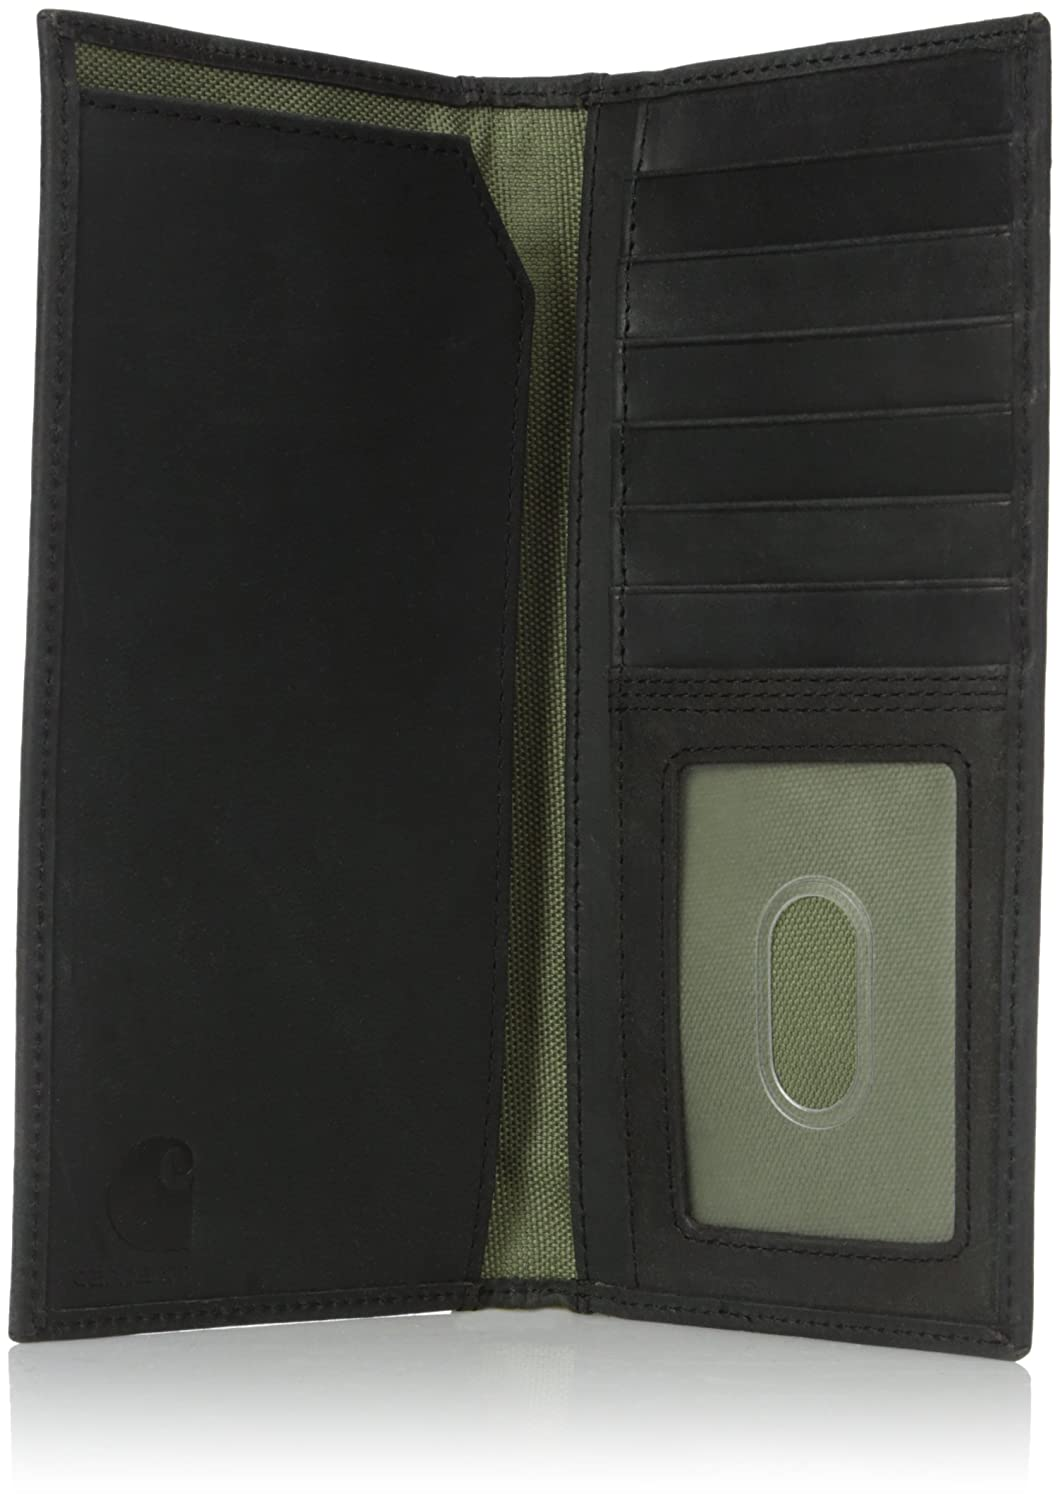 5789ce83ffacb Carhartt Men s Top Grain Leather Rodeo Wallet, Contrasting Stitch, Black,  One Size at Amazon Men s Clothing store